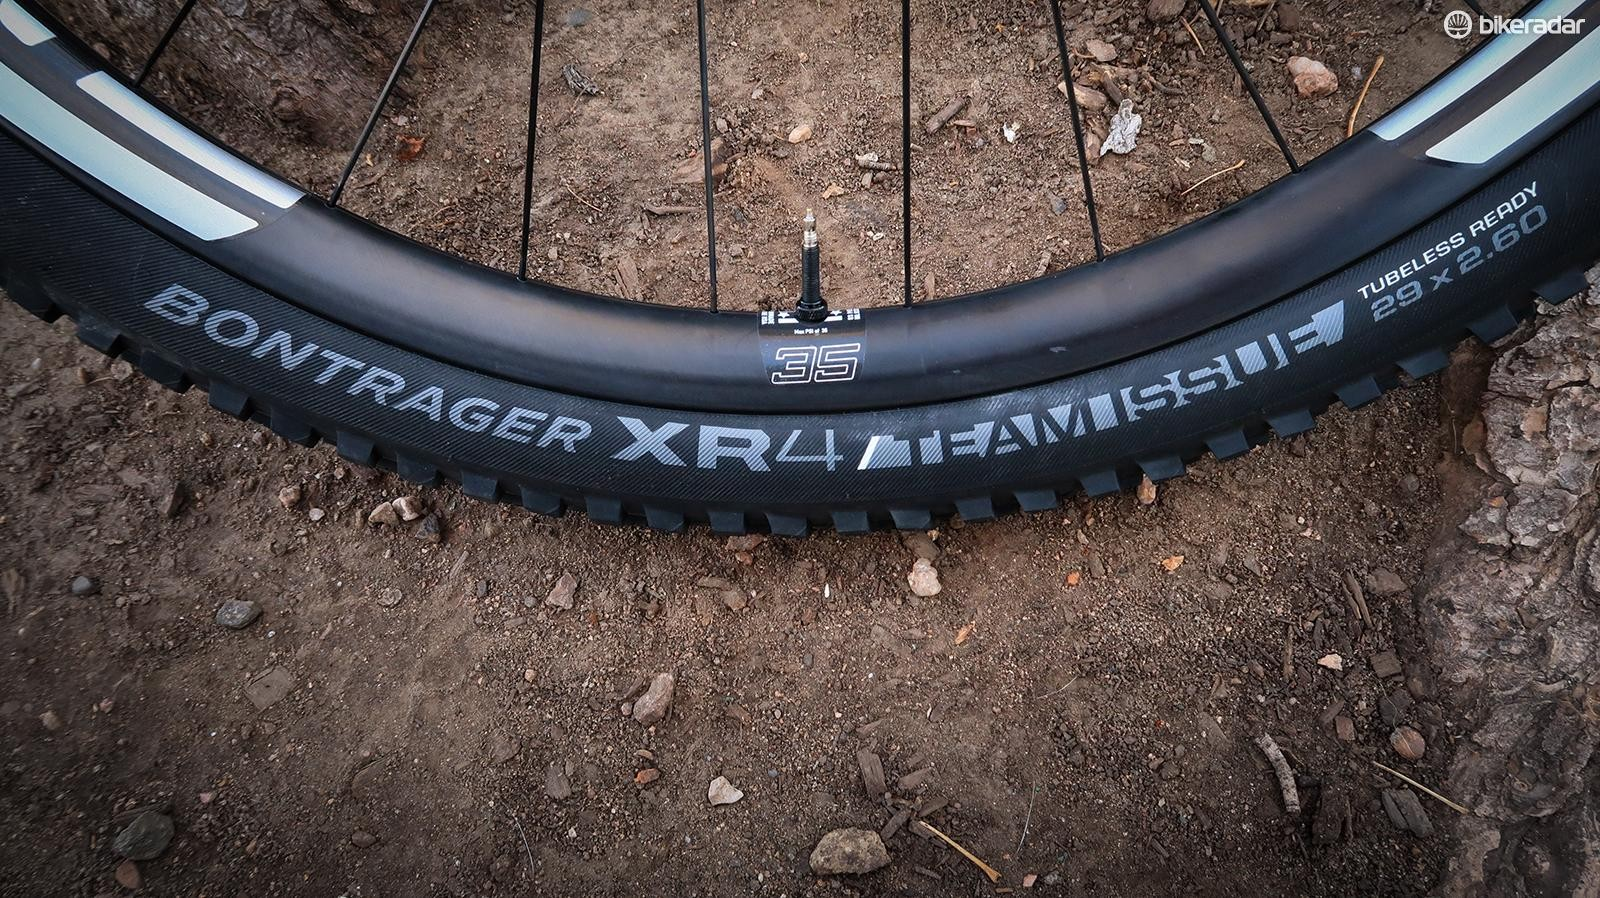 Mounted to these new Enve wheels are a pair of Bontrager's new 29x2.6in Team Issue XR4 tires